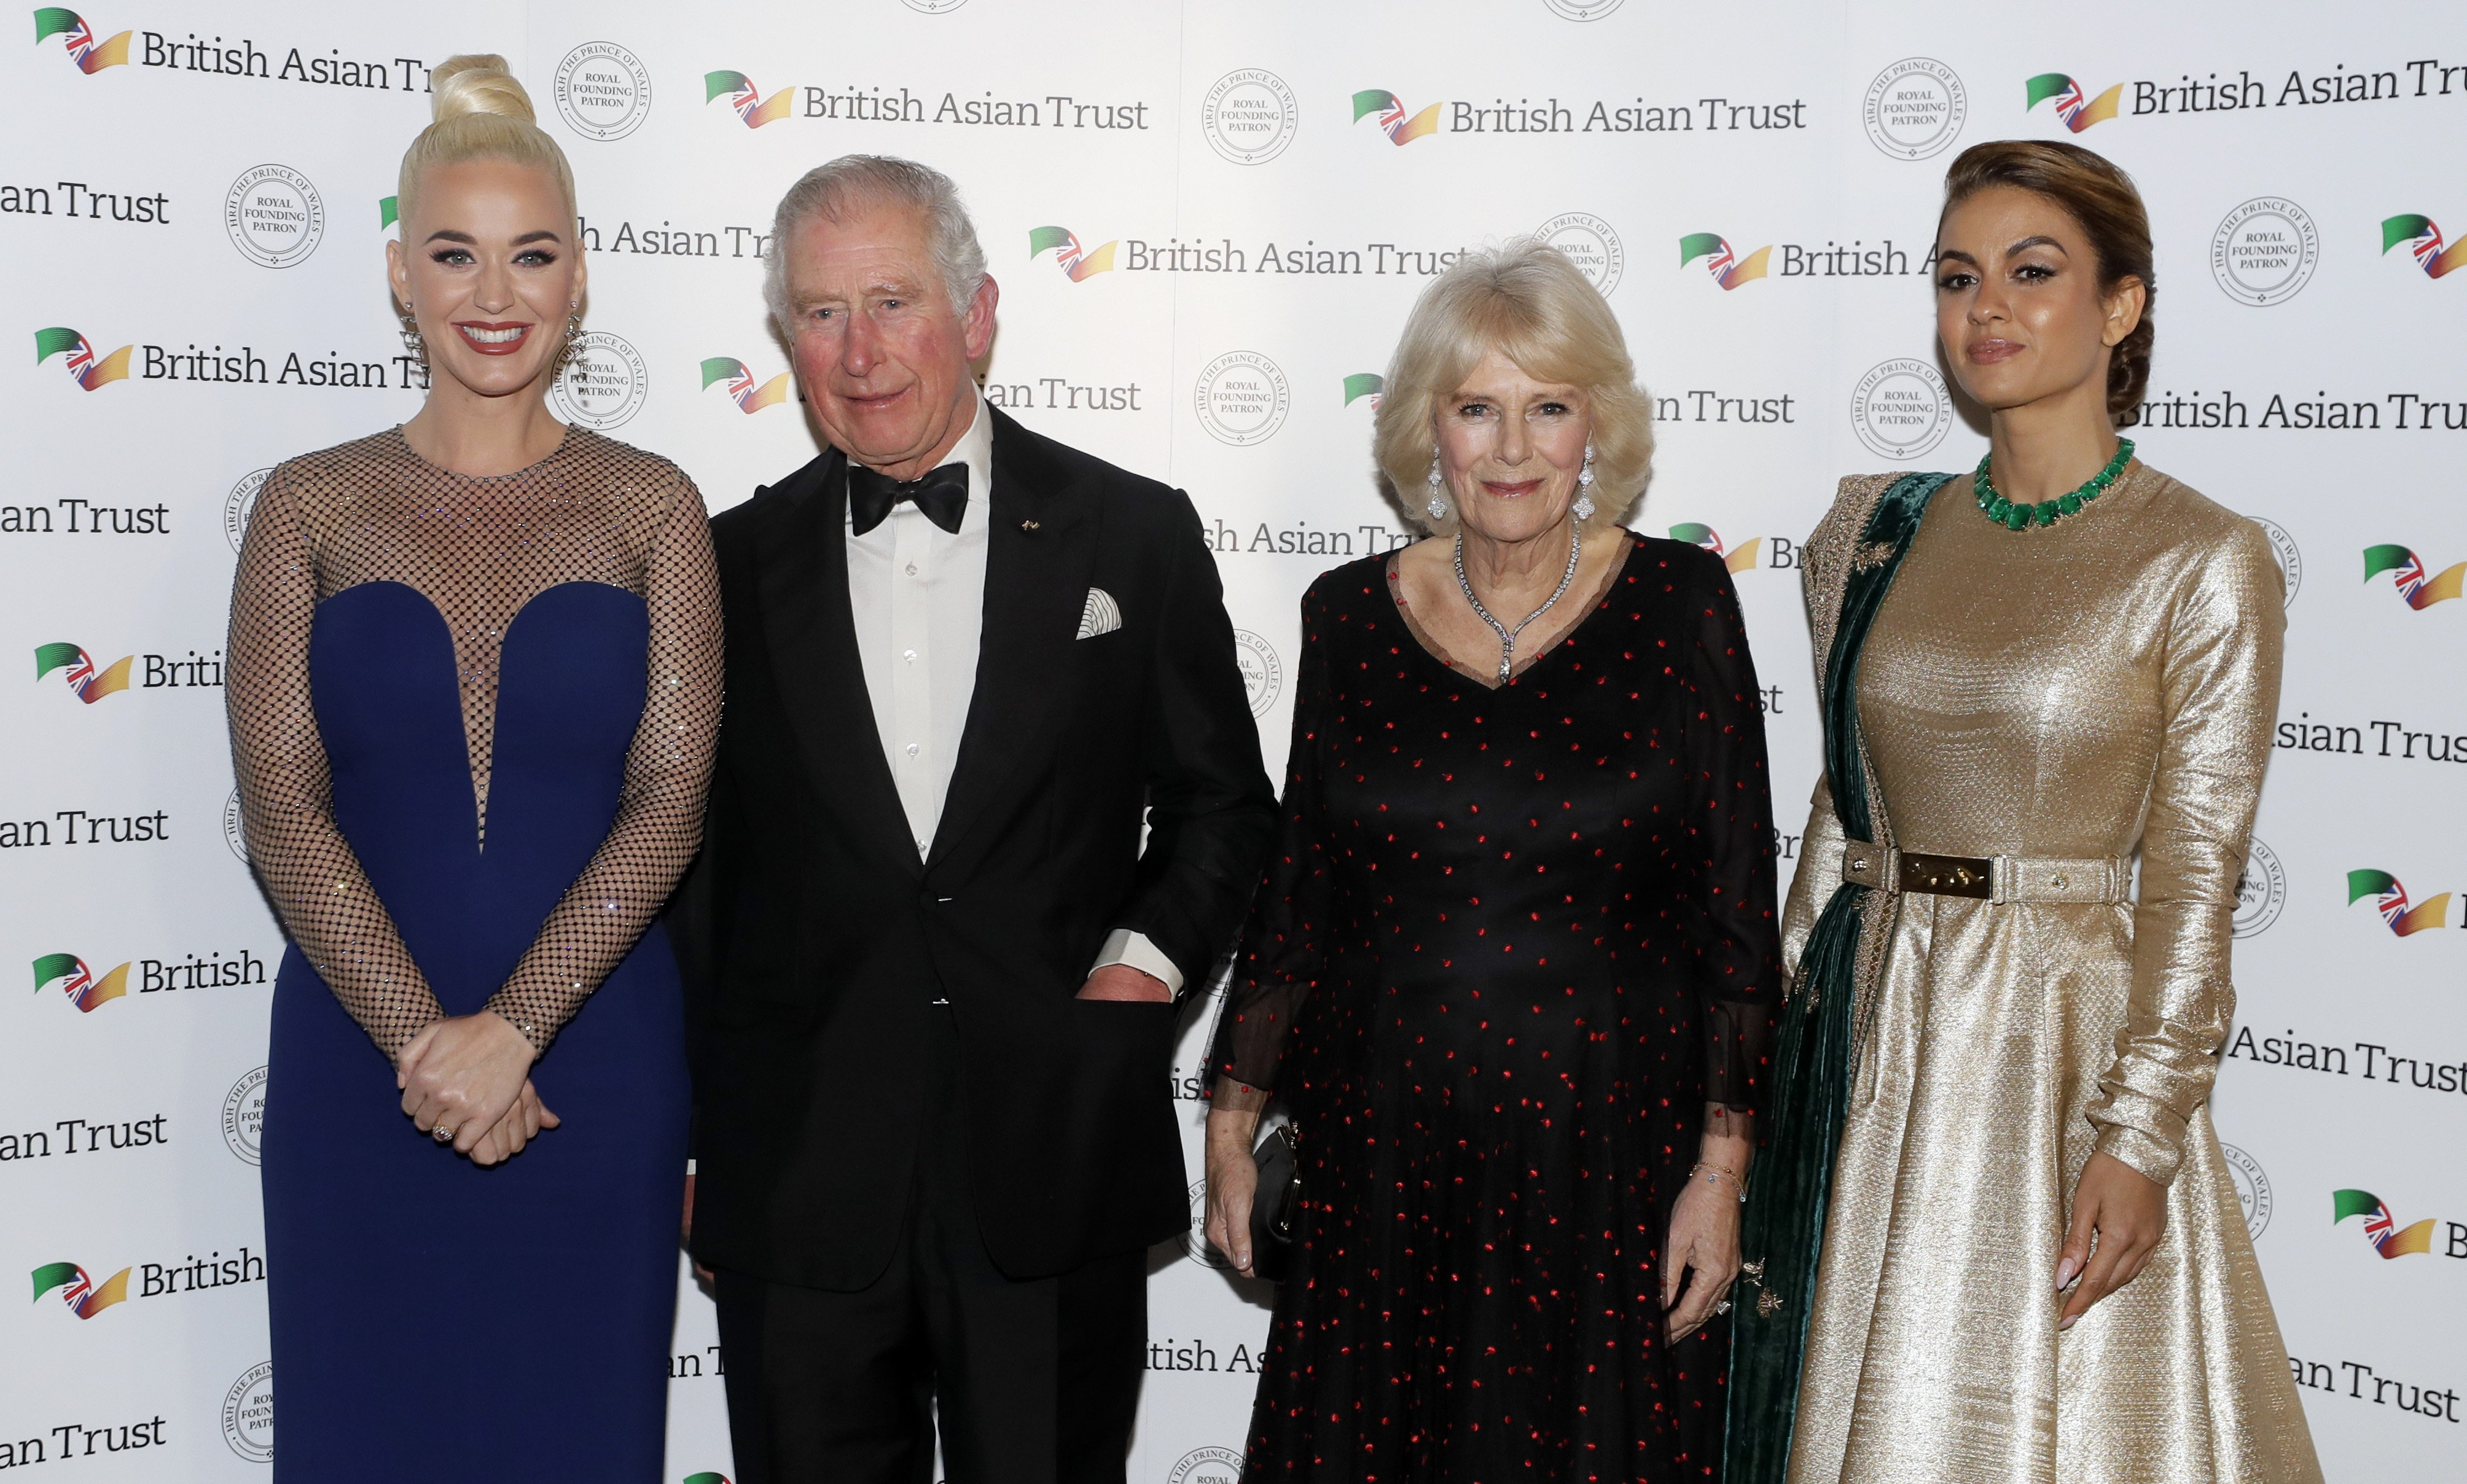 Prince Charles and his wife Camilla, with Katy Perry and Indian businesswoman Natasha Poonawalla at the British Asian Trust on February 4, 2020, in London, England. | Source: Getty Images.